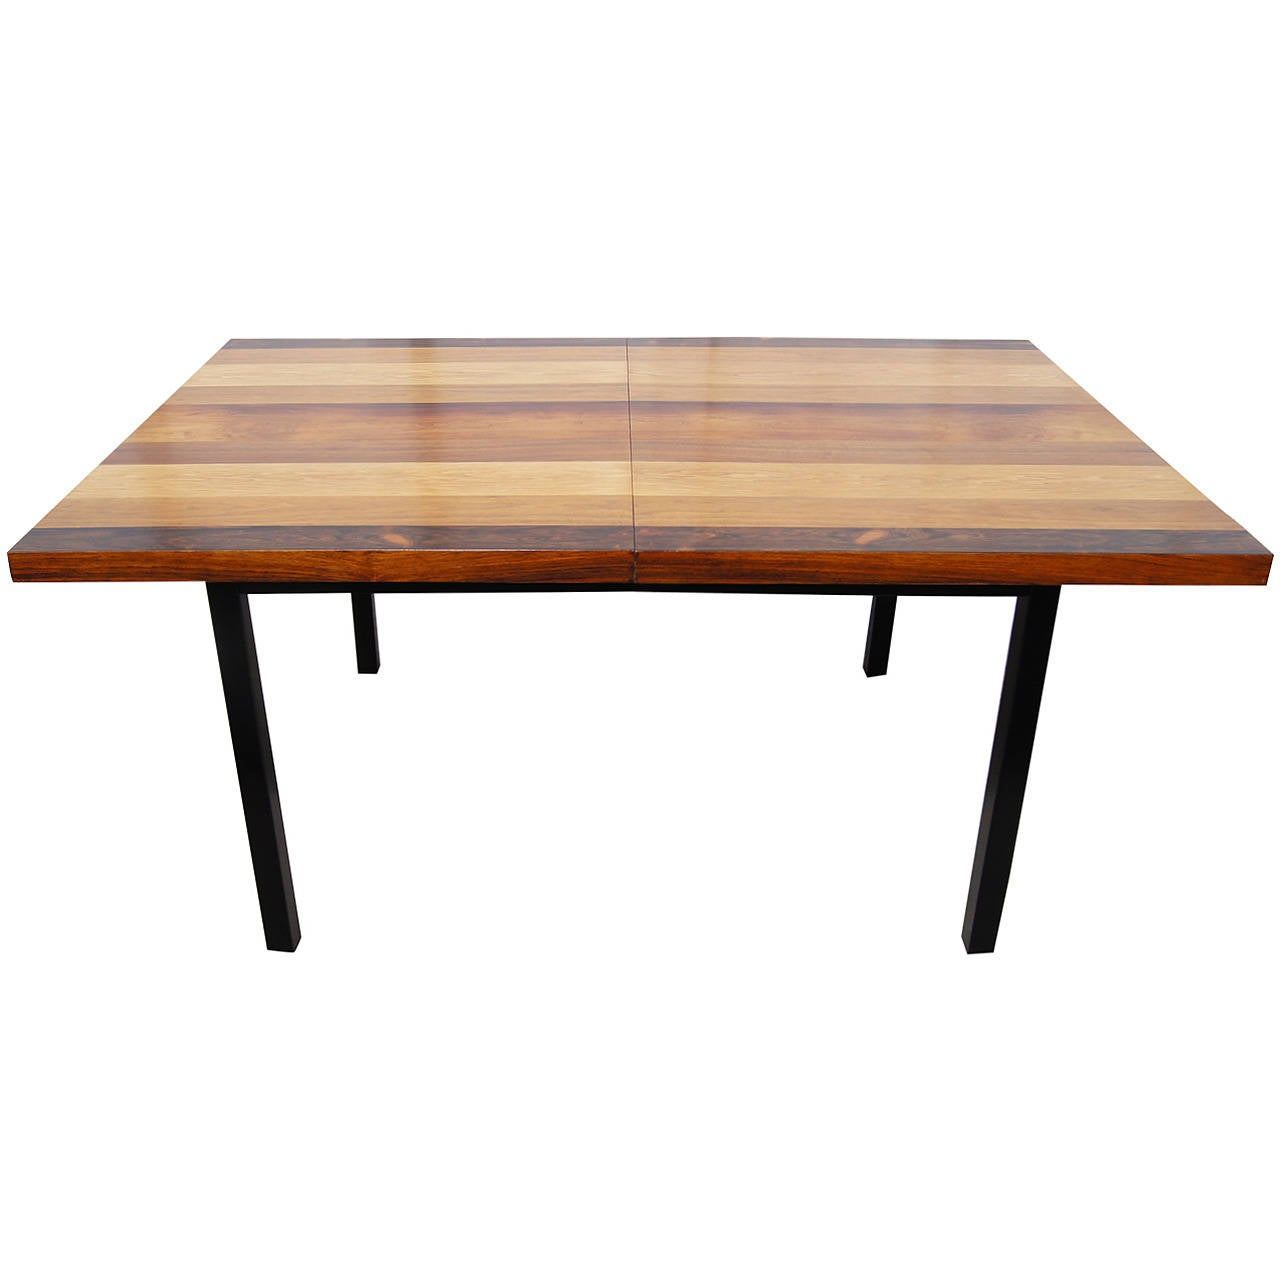 Mixed Wood Dining Table By Milo Baughman At 1stdibs. Itt Tech Student Portal Help Desk. Couch Laptop Desk. How To Install Drawer Slides On Old Drawers. Round Dining Table With Leaf Extension. Side Coffee Table. Pool Table Stores Near Me. Target Desk Chairs. Desks For Teenage Bedroom